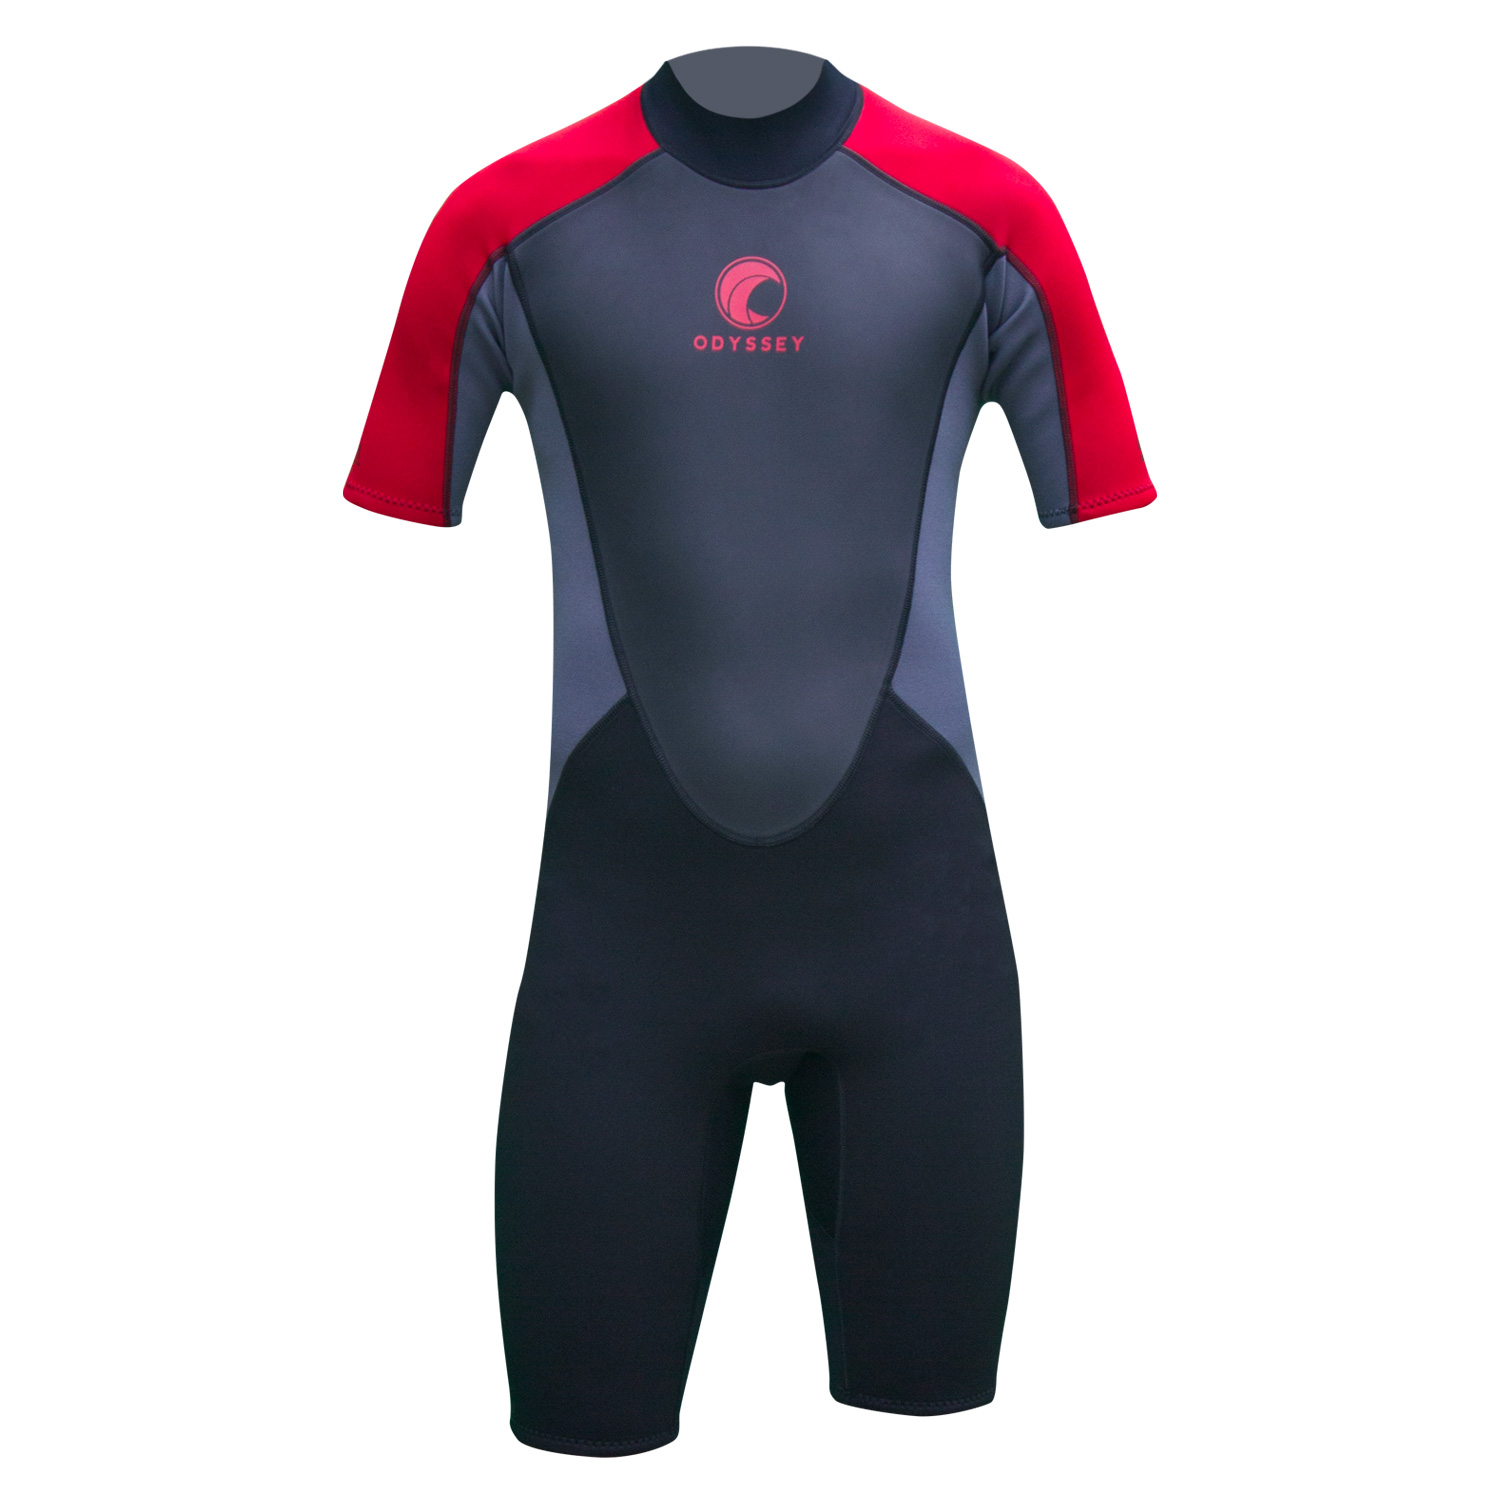 Odyssey-Core-3-2mm-Mens-Shorty-Wetsuit-Surf-Swim-Kayak-Shortie-Wet-Suit-S-XXL thumbnail 14